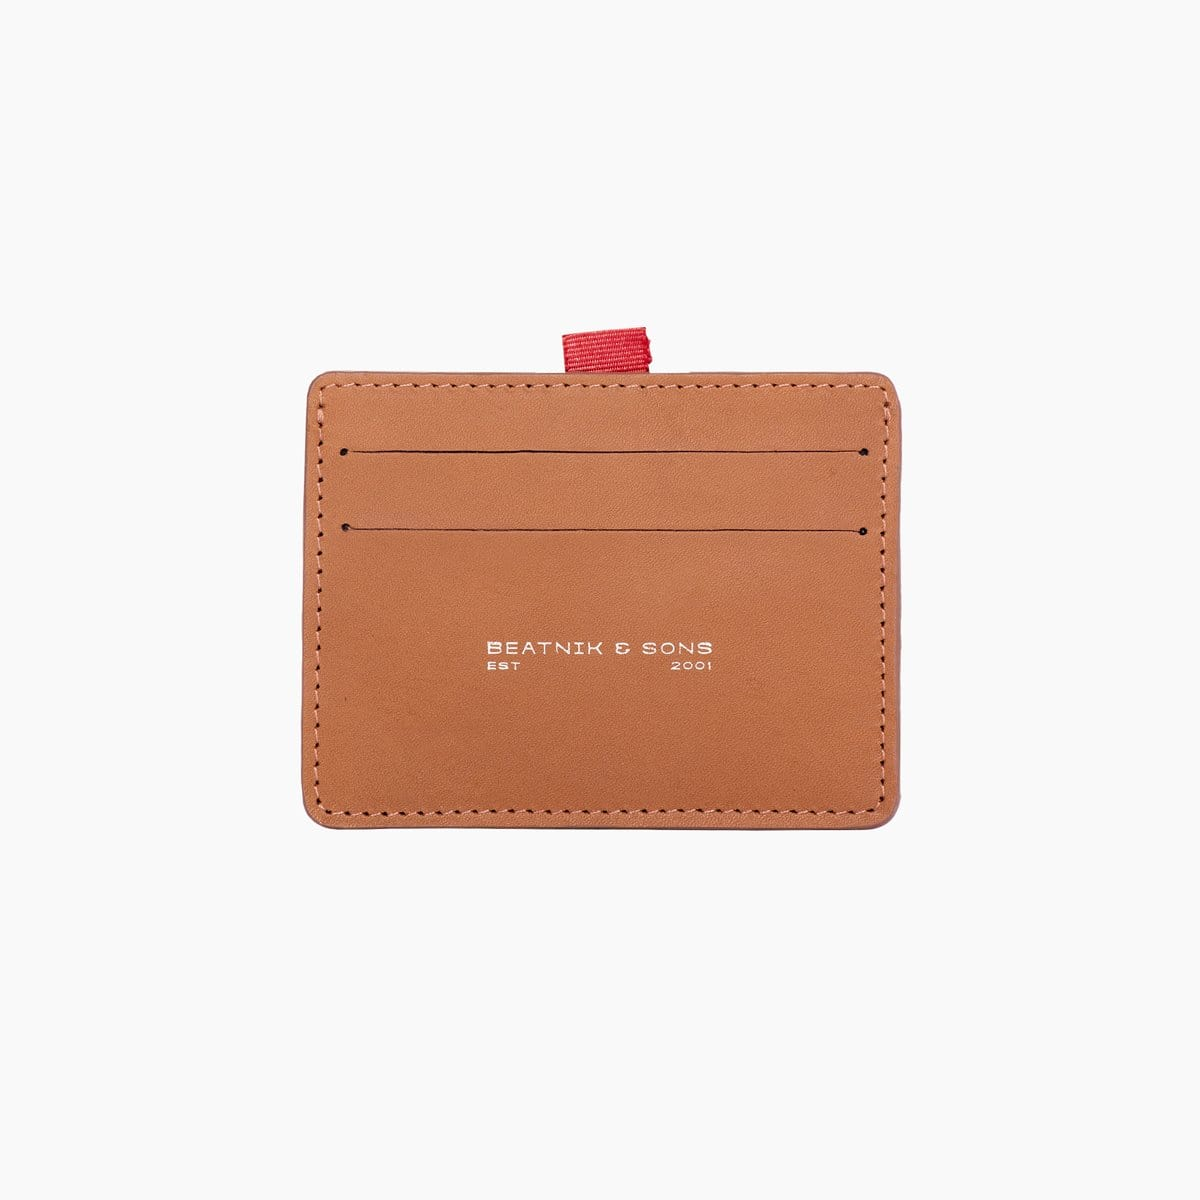 the Corso cardholder - Beatnik & Sons